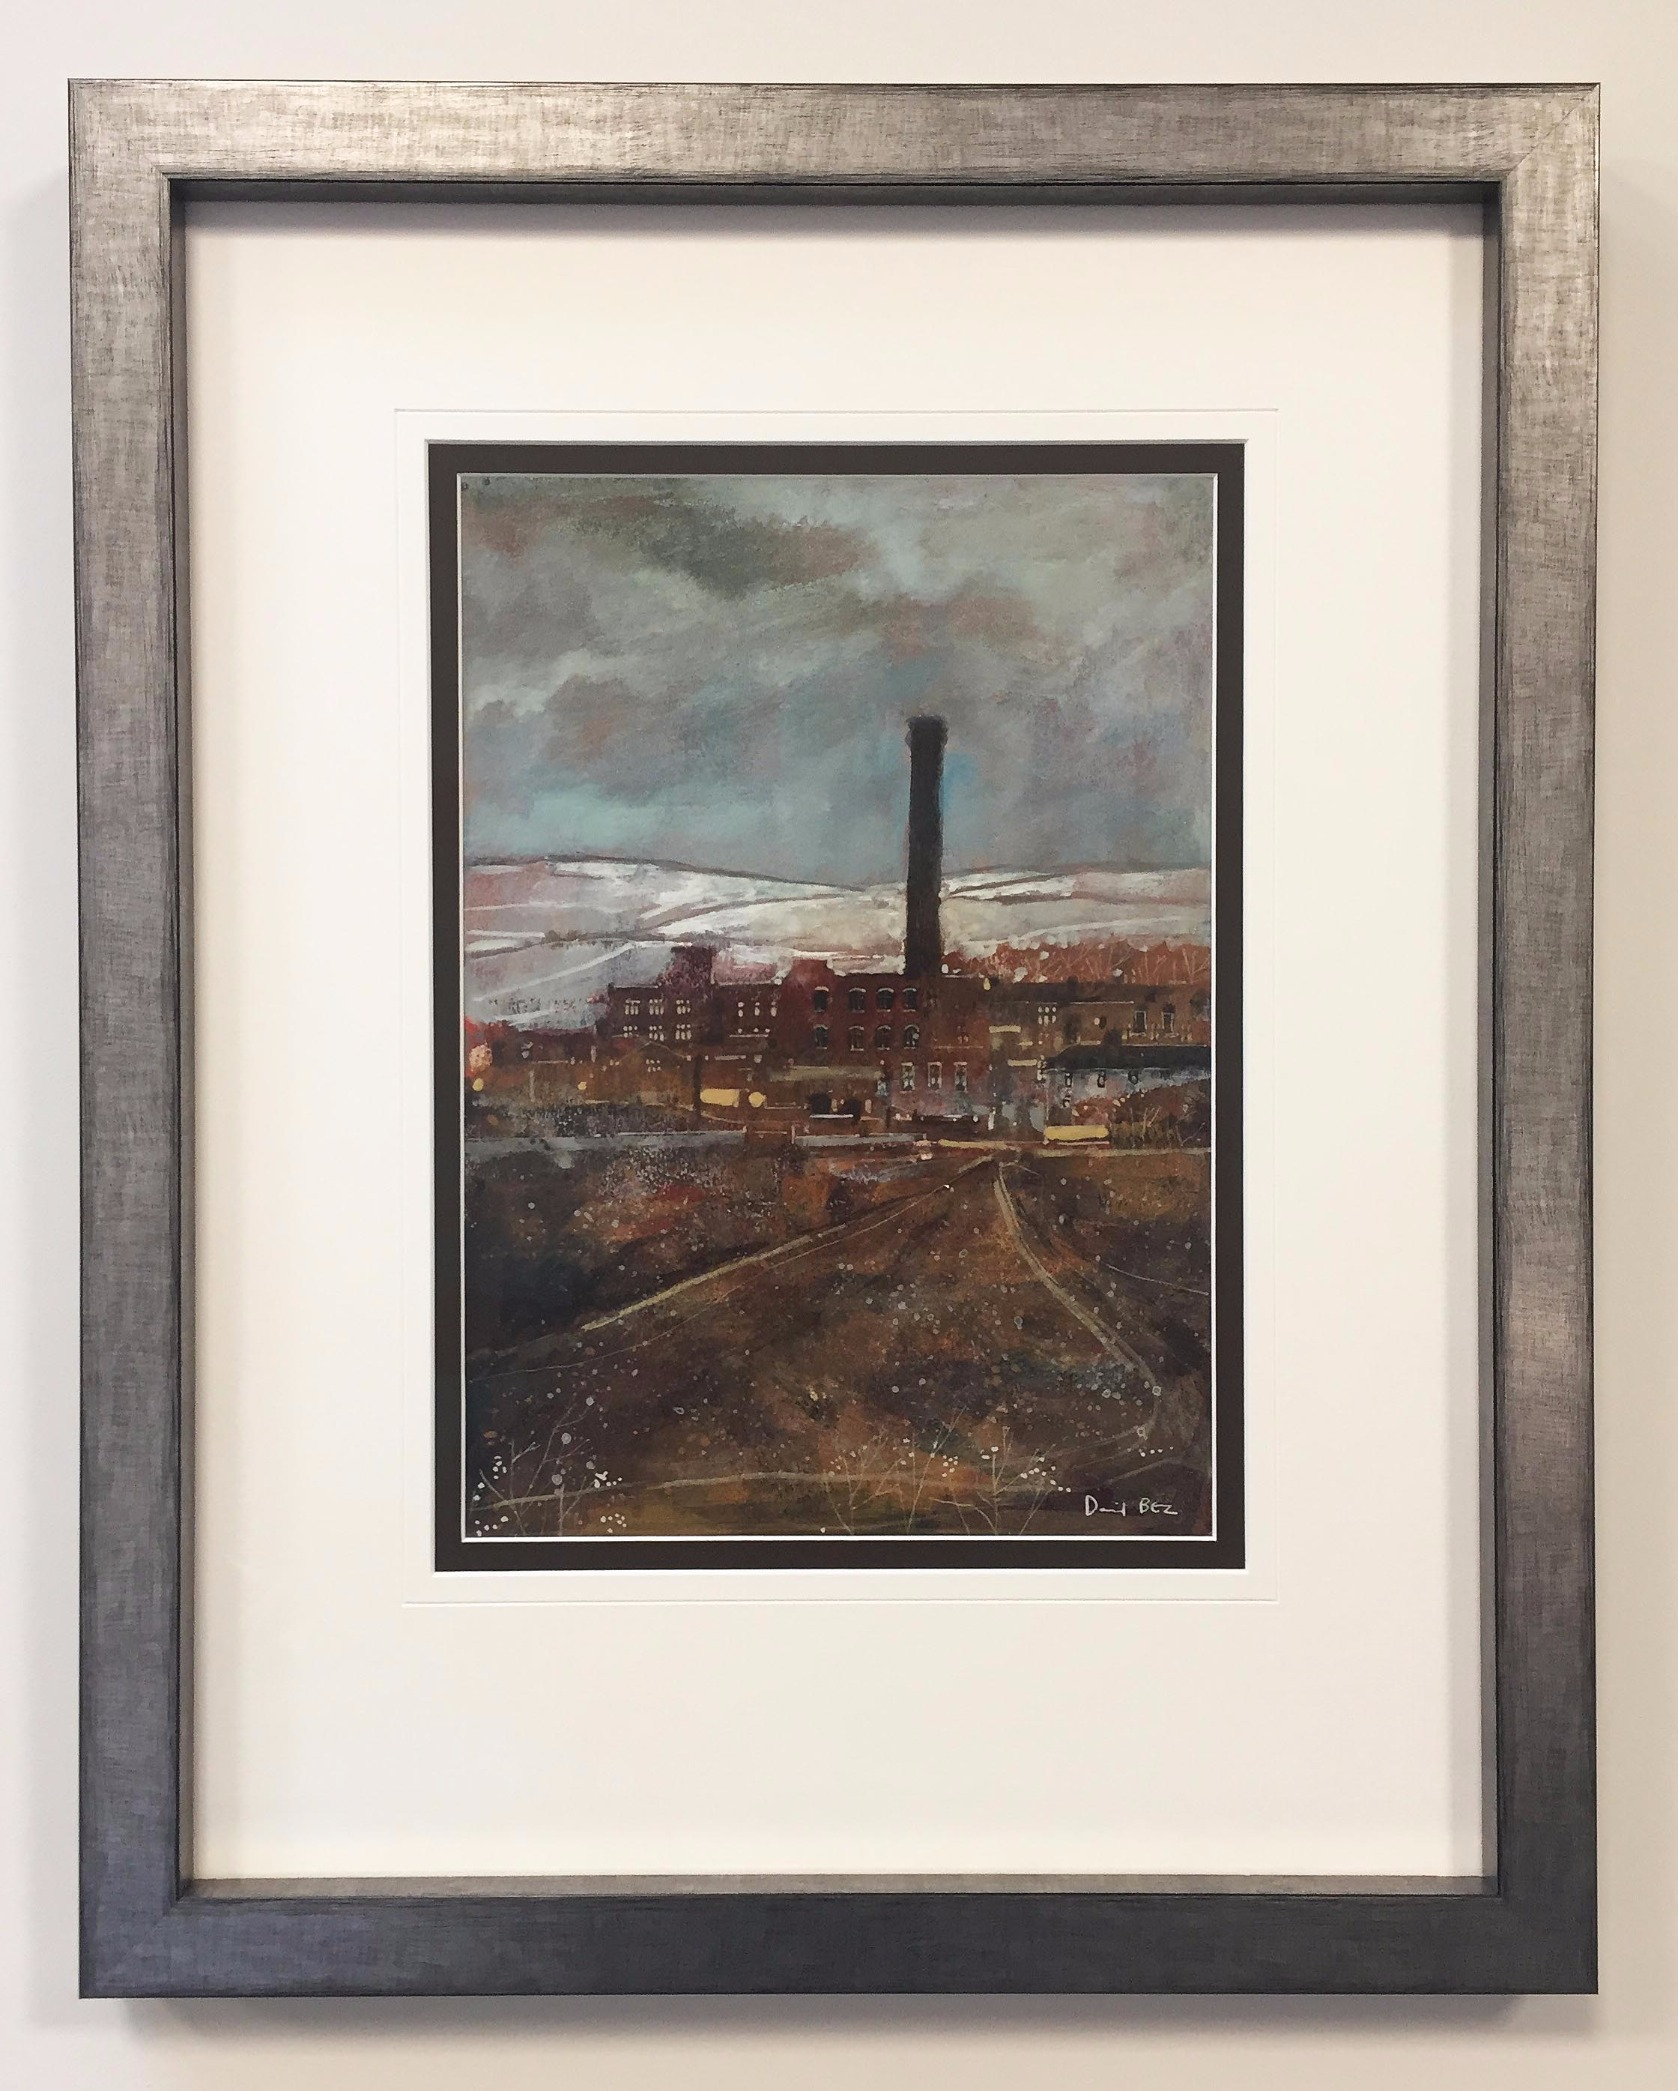 The Snowy Moor by David Bez, Northern | Nostalgic | Industrial | Landscape